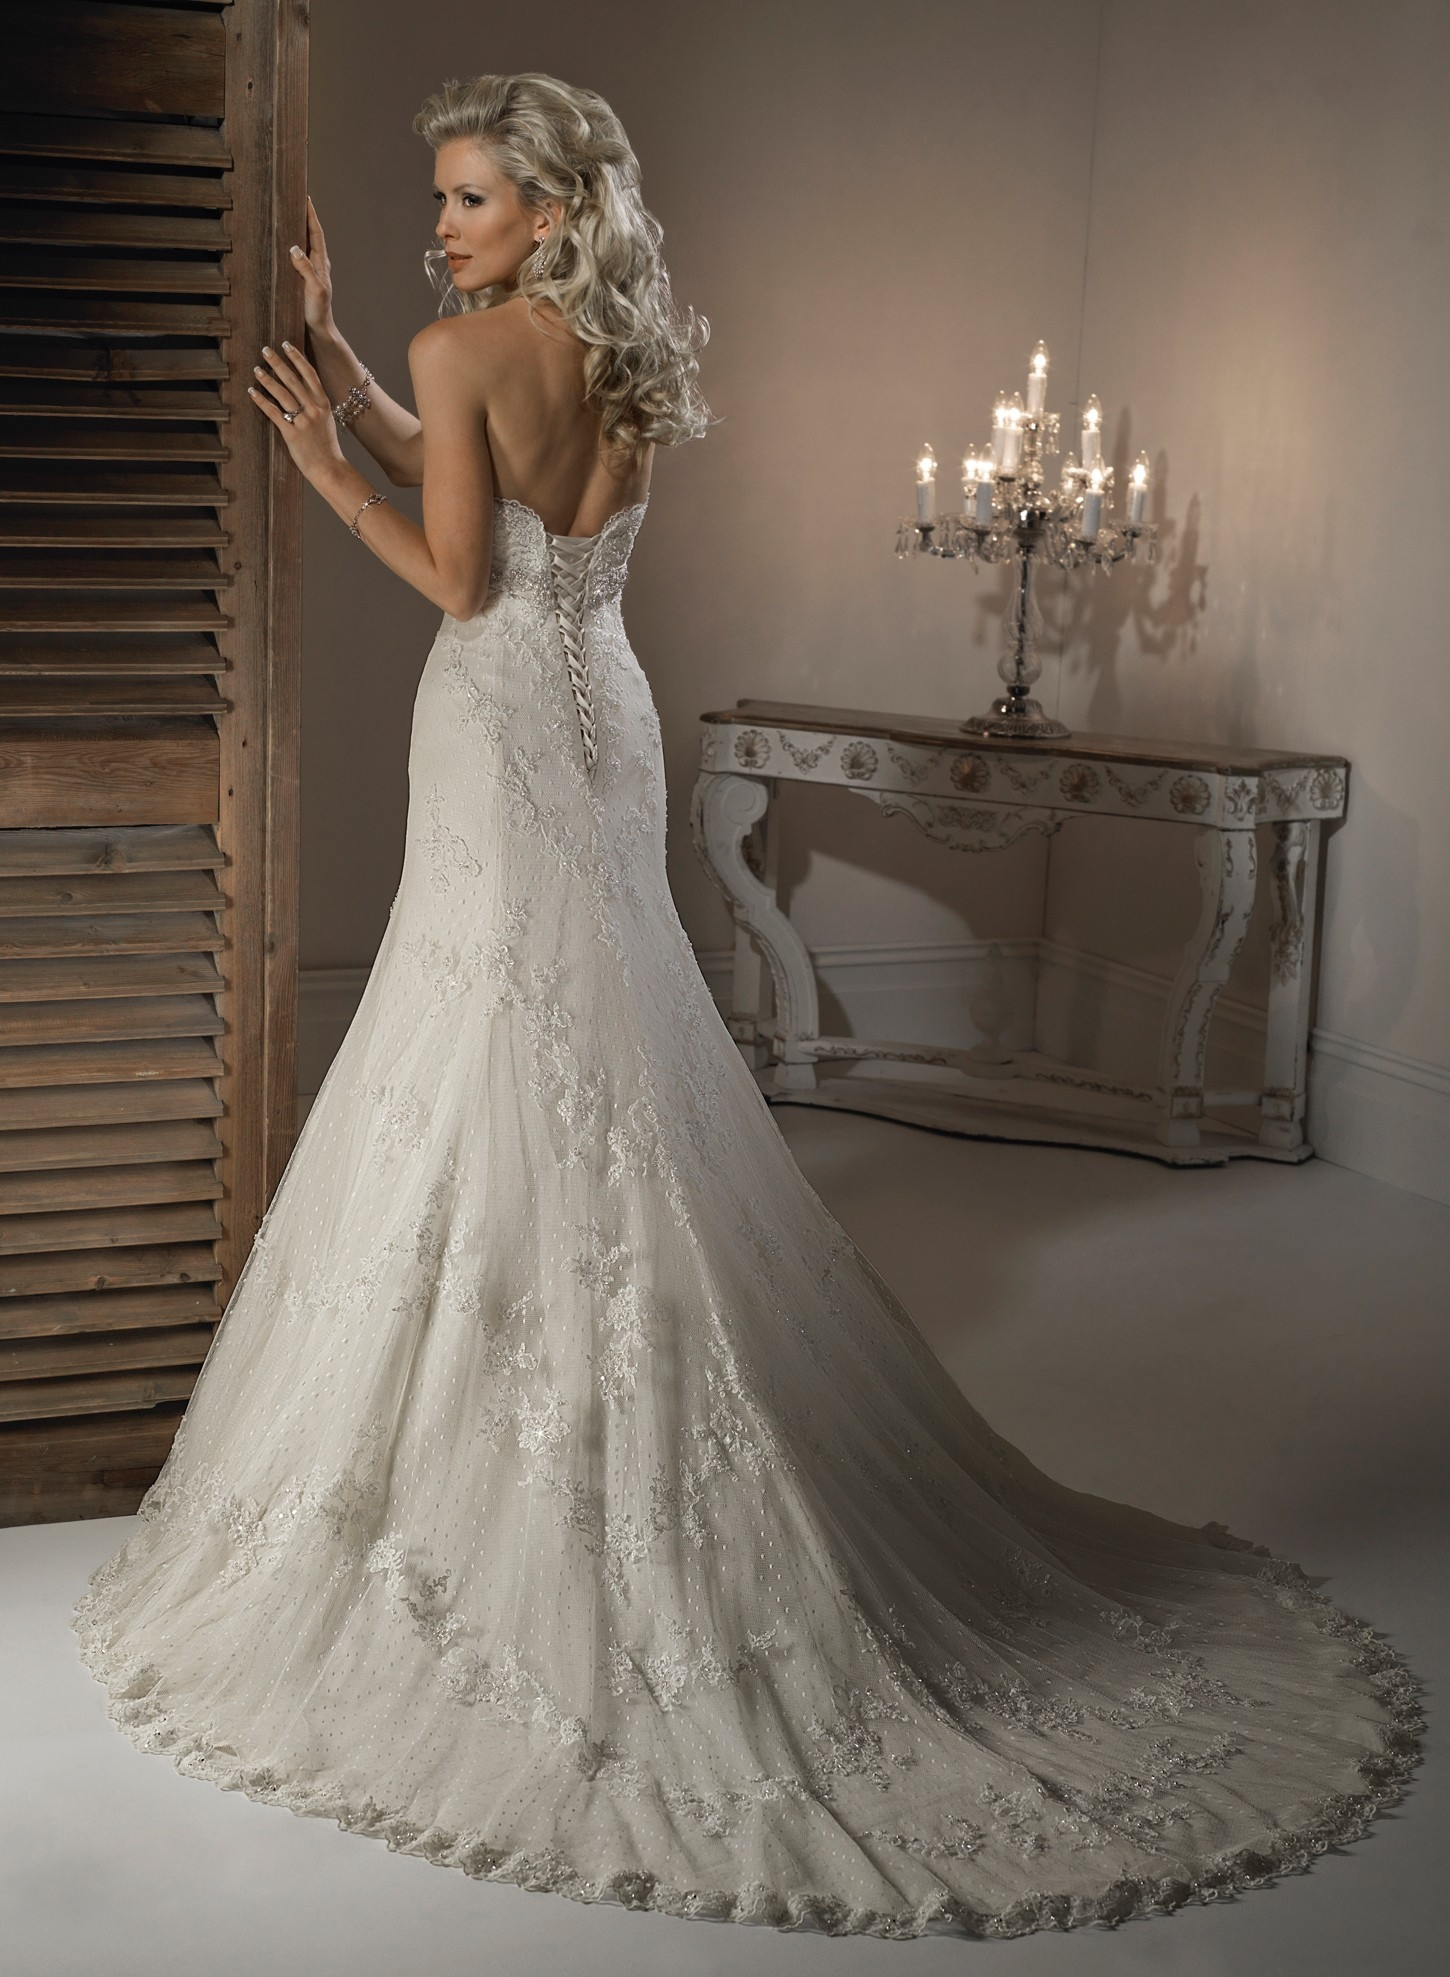 Strapless A Line Beaded Bridal Gown s and